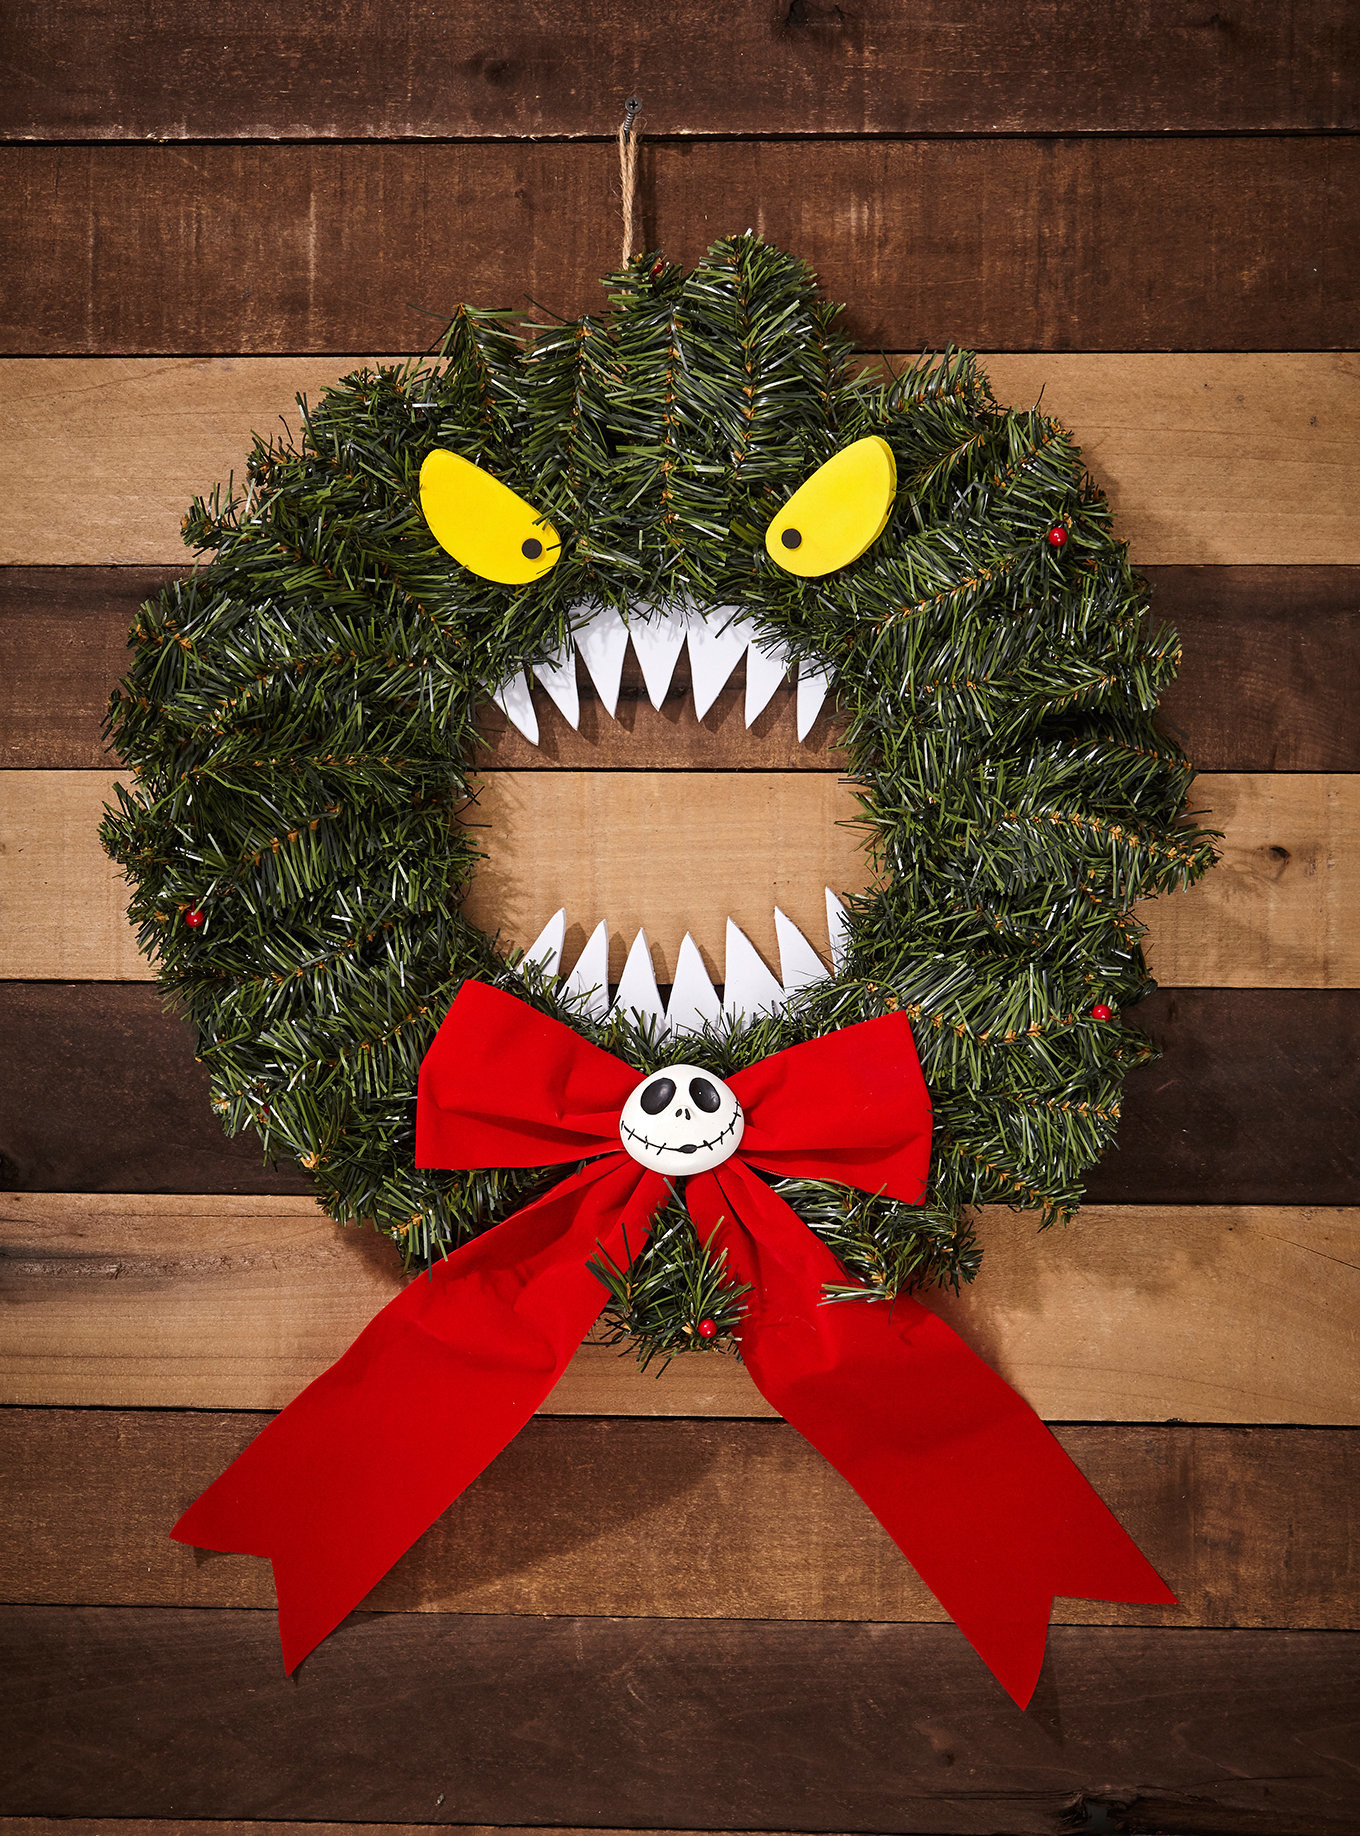 The wreath as a face with scary eyes on top and teeth in the center, with a red bow with Jack Skellington's face in the middle